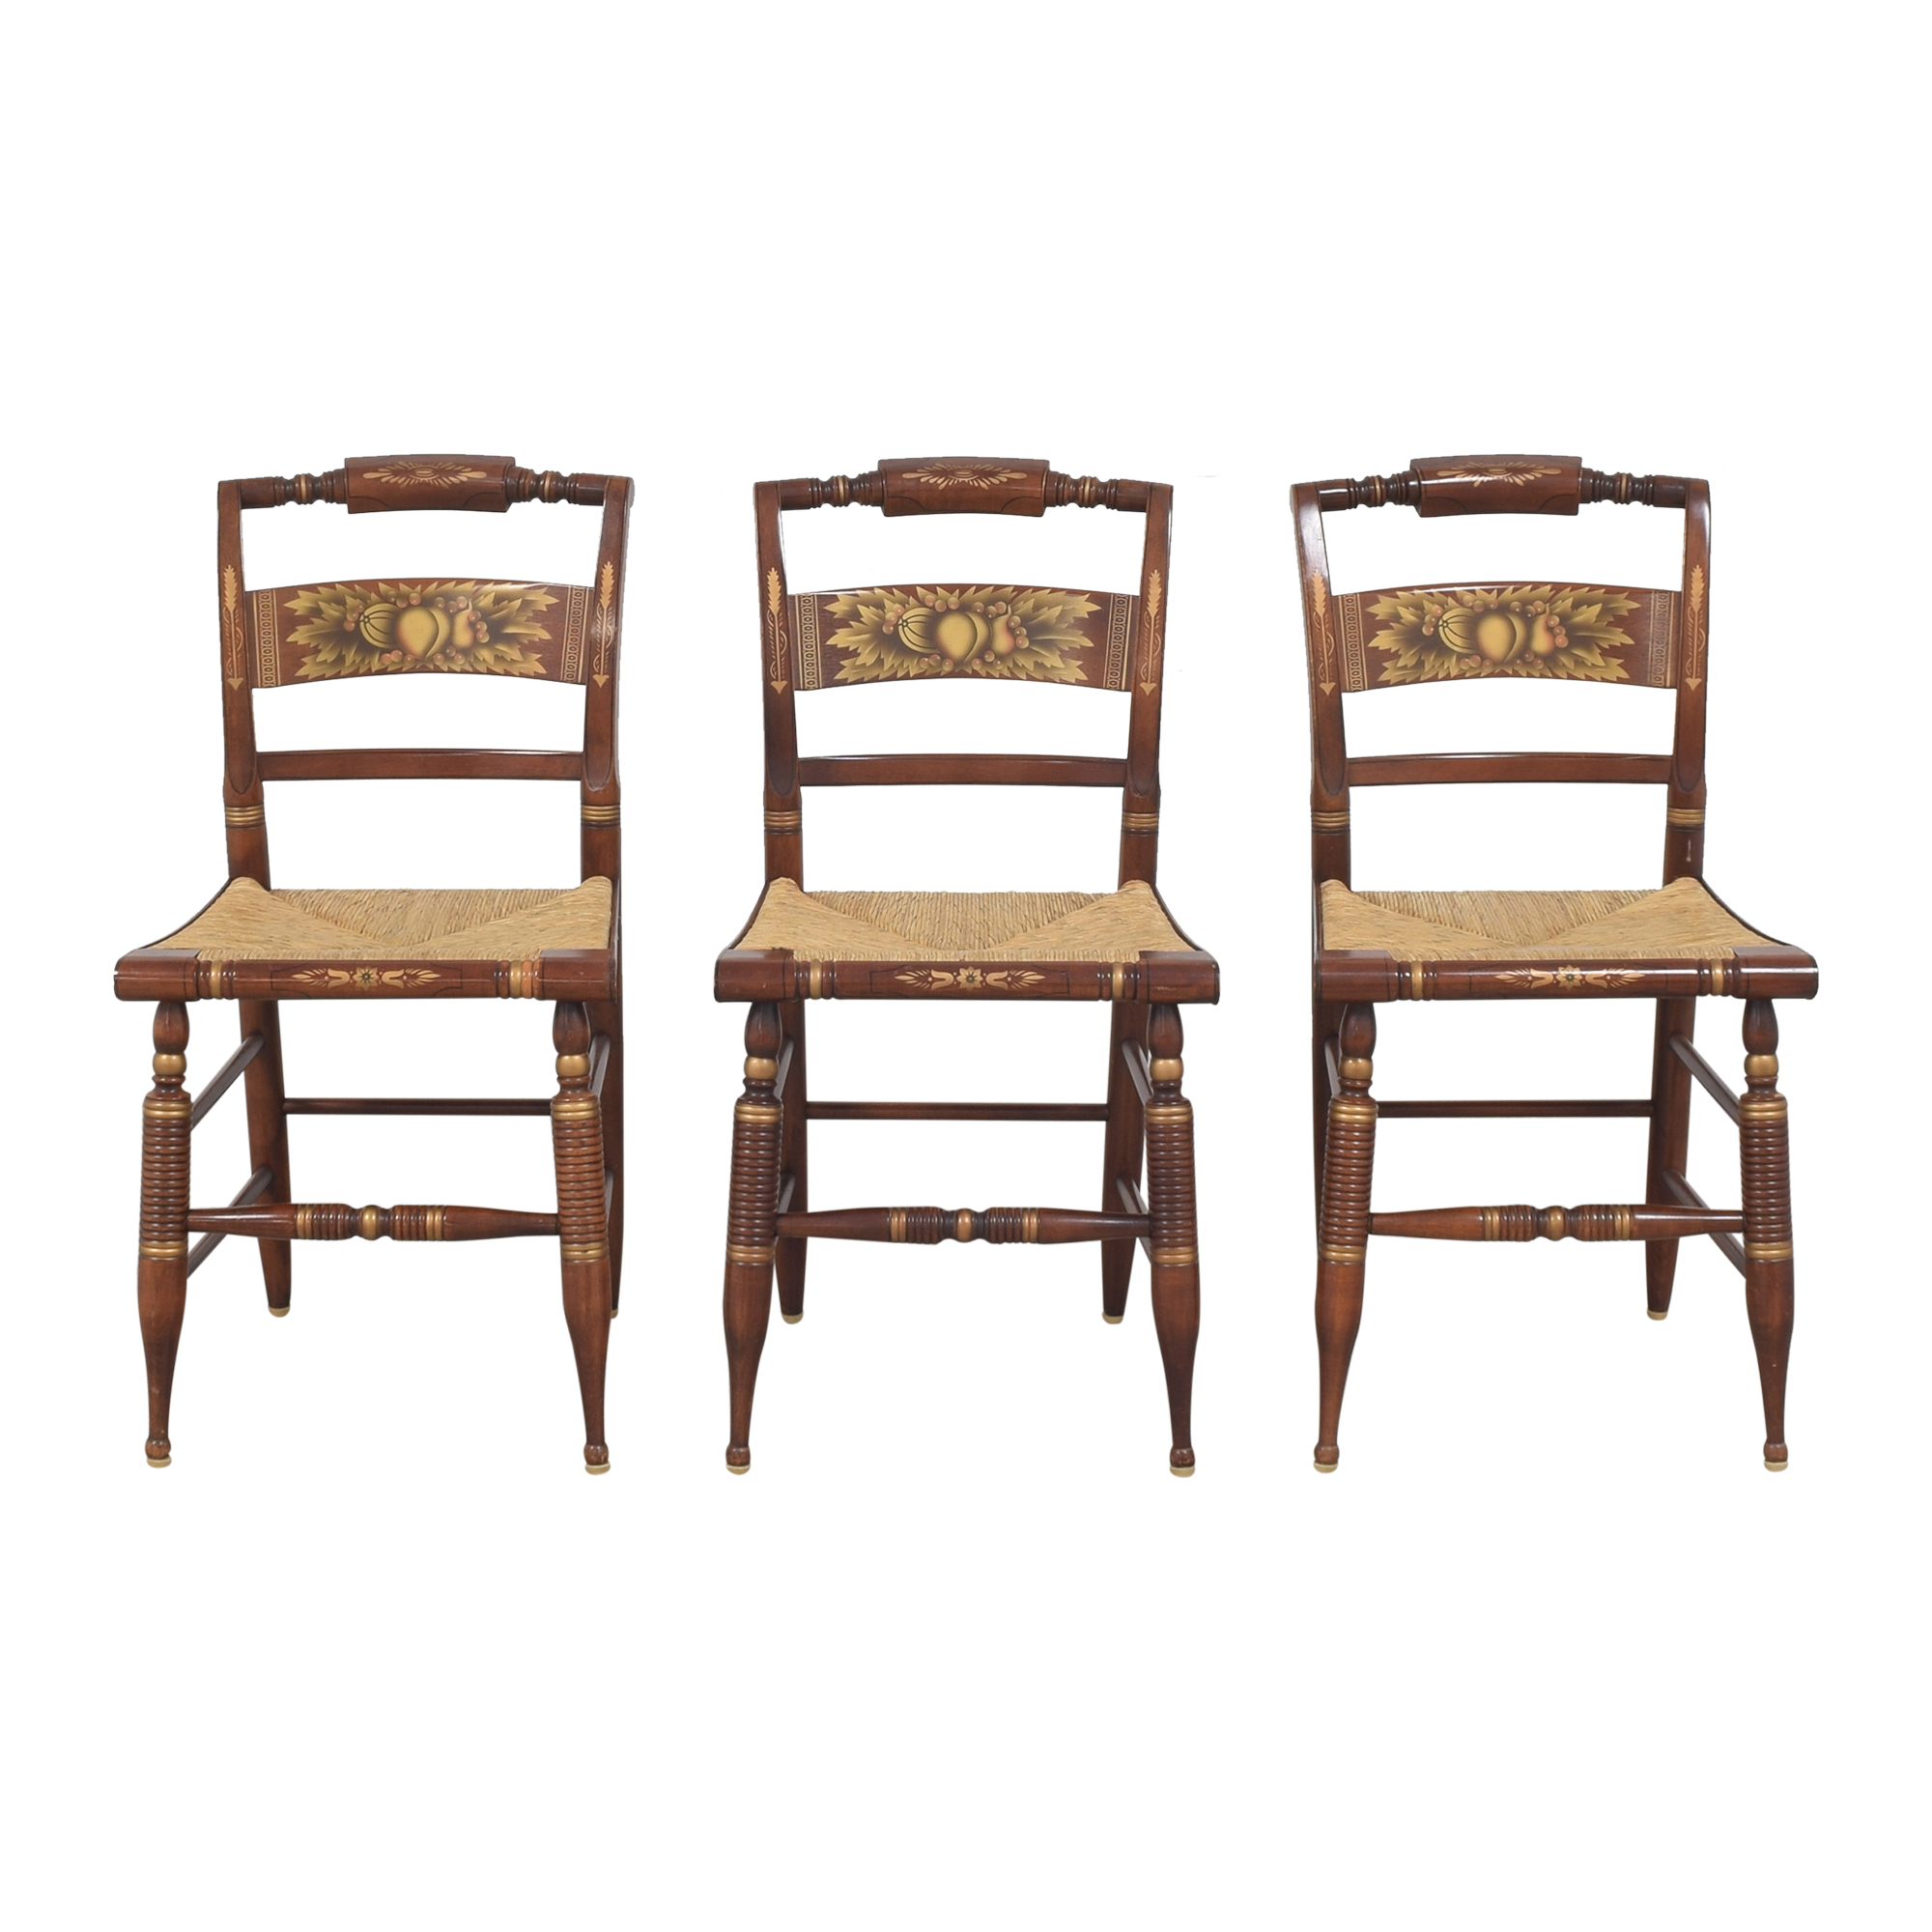 Lambert Hitchcock Lambert Hitchcock Cane Seat Dining Chairs for sale